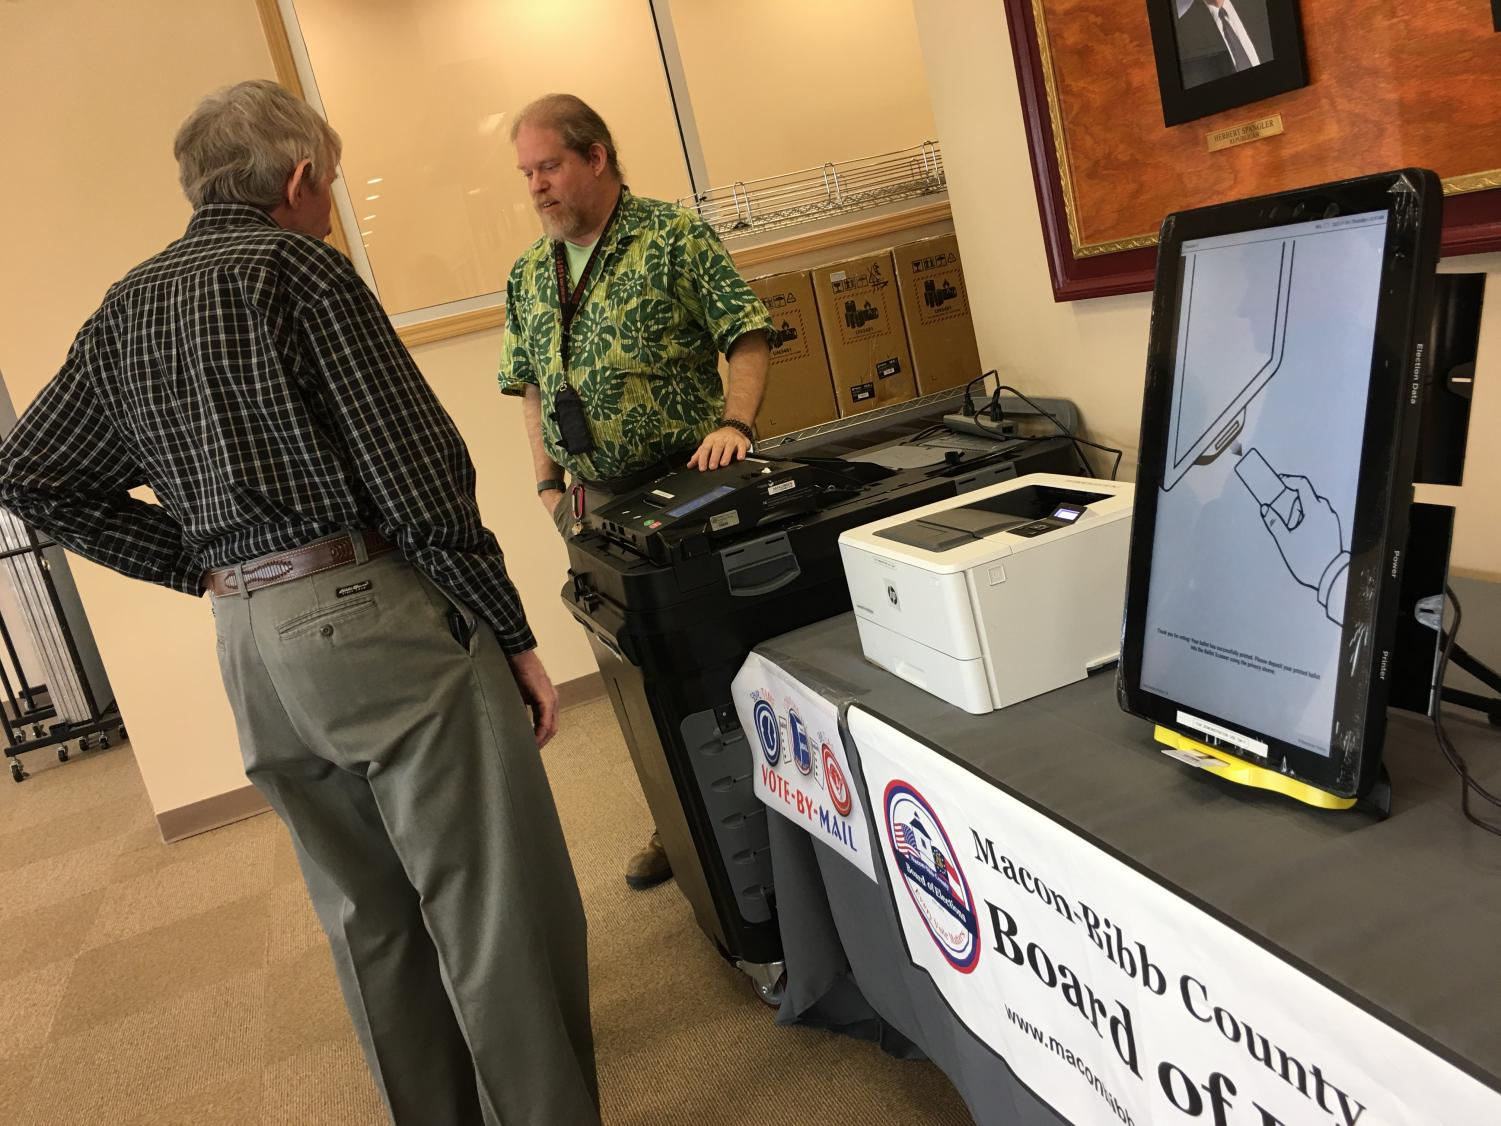 Macon-Bibb County elections officer Thomas Gillon demonstrates the new voting machines Thursday at the board of elections office on Pio Nono Avenue.